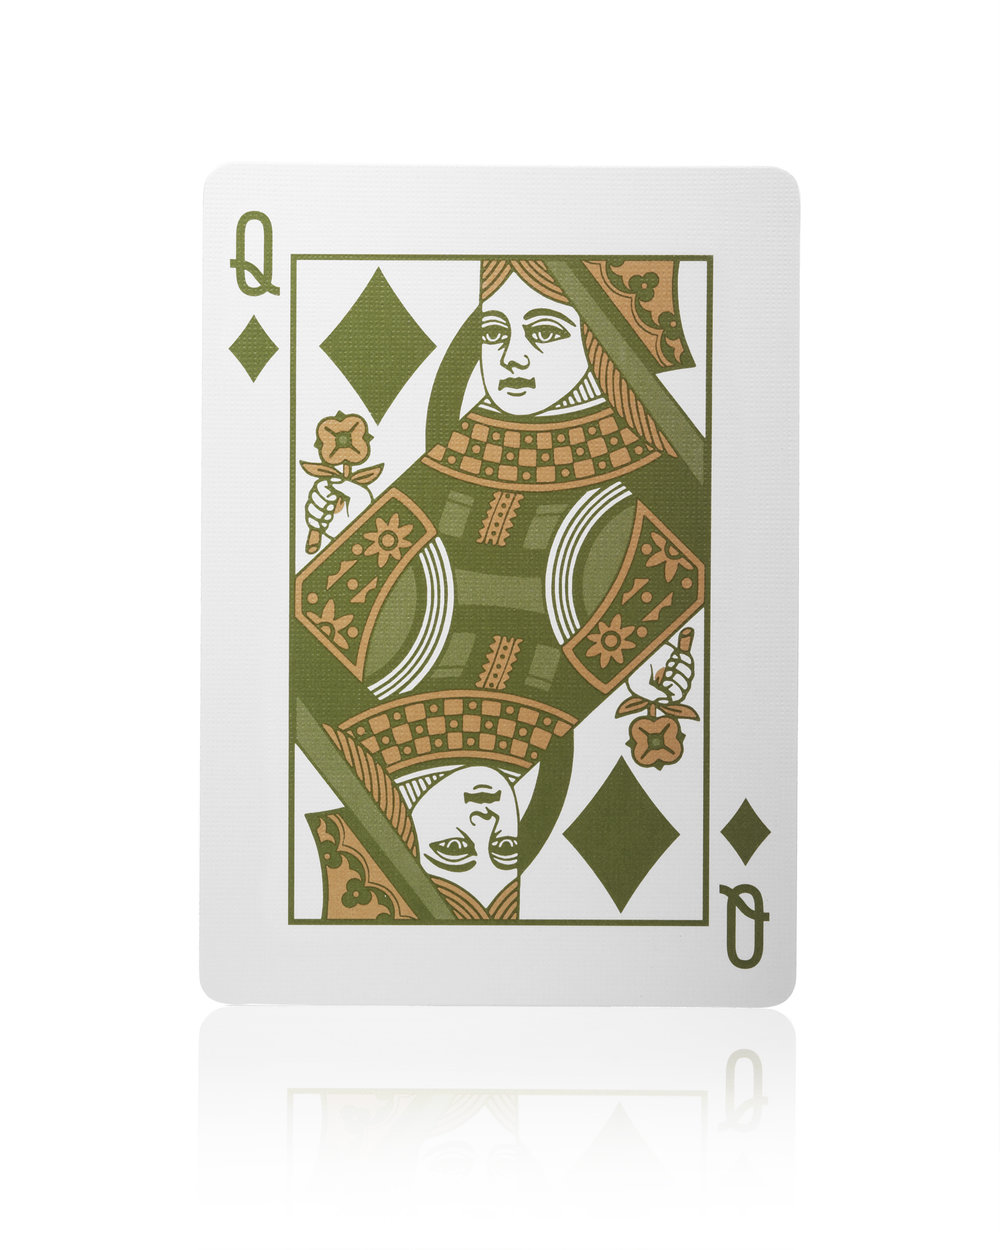 110330-PlayingCards-PlayingCards-006 copy.jpg